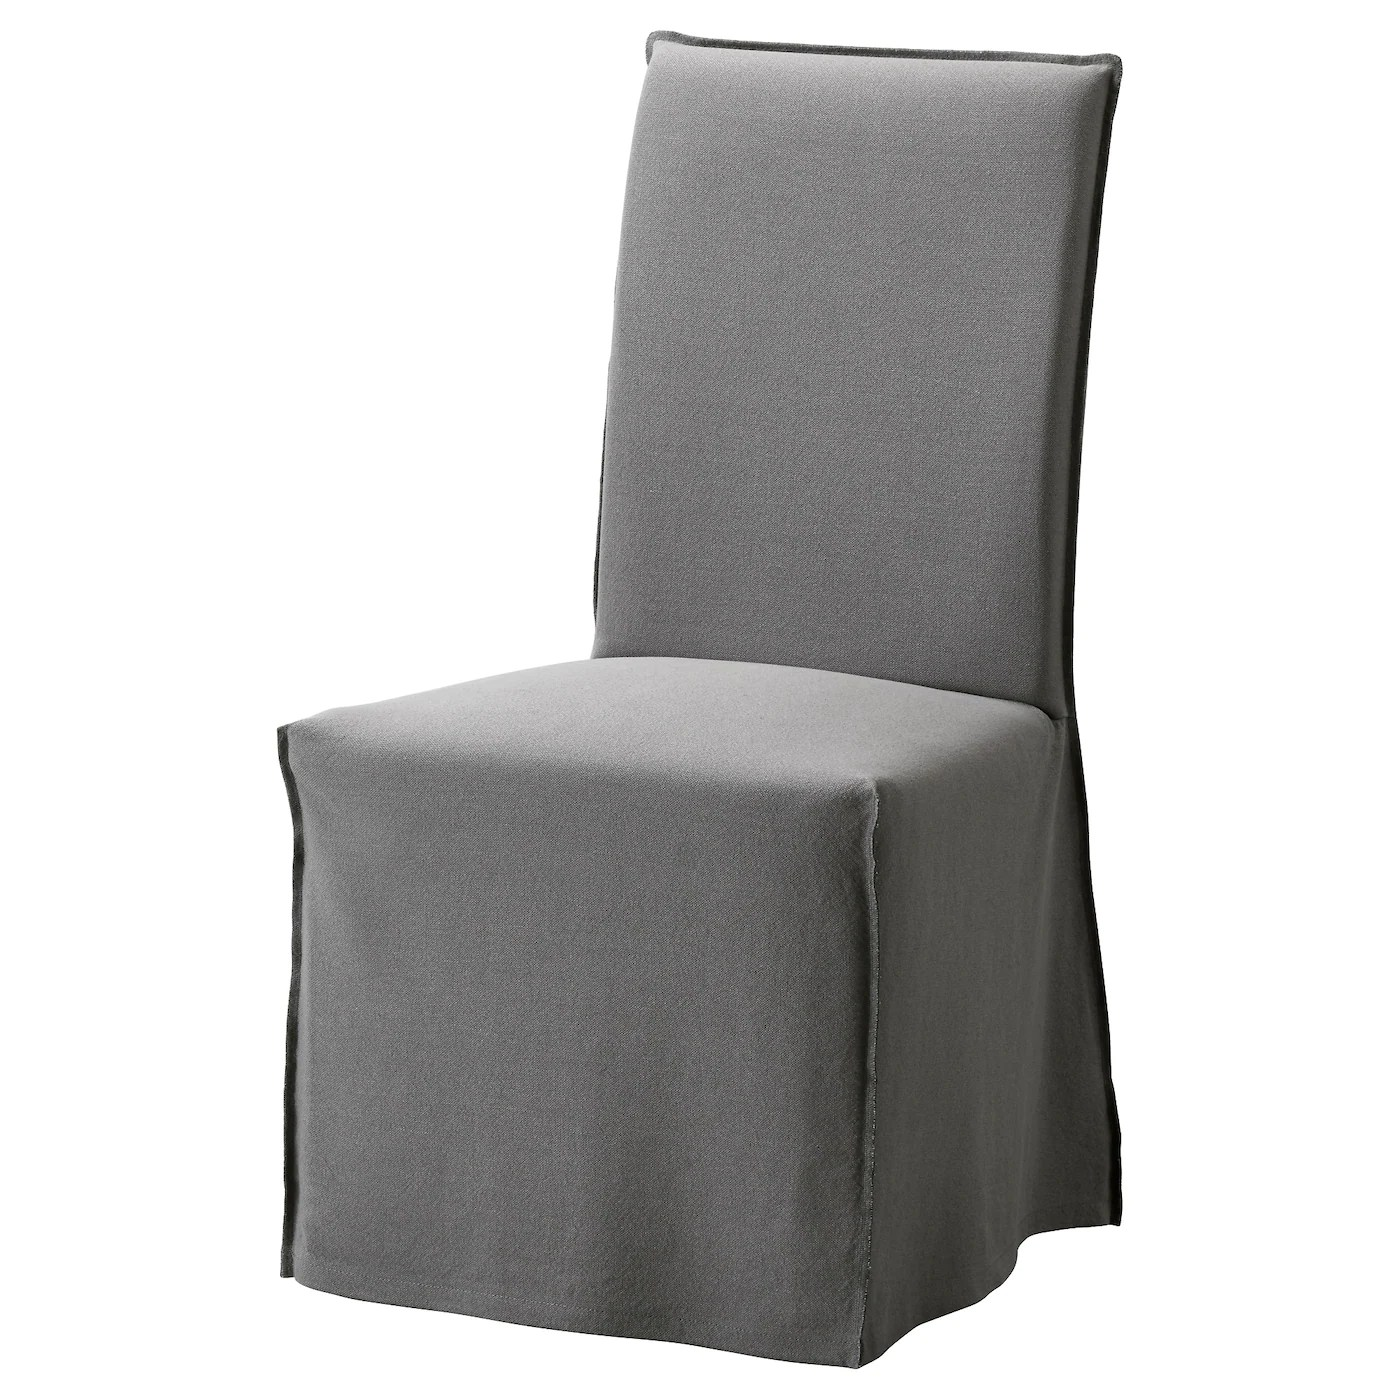 Chair Coverings Chair Covers Dining Chair Covers Ikea